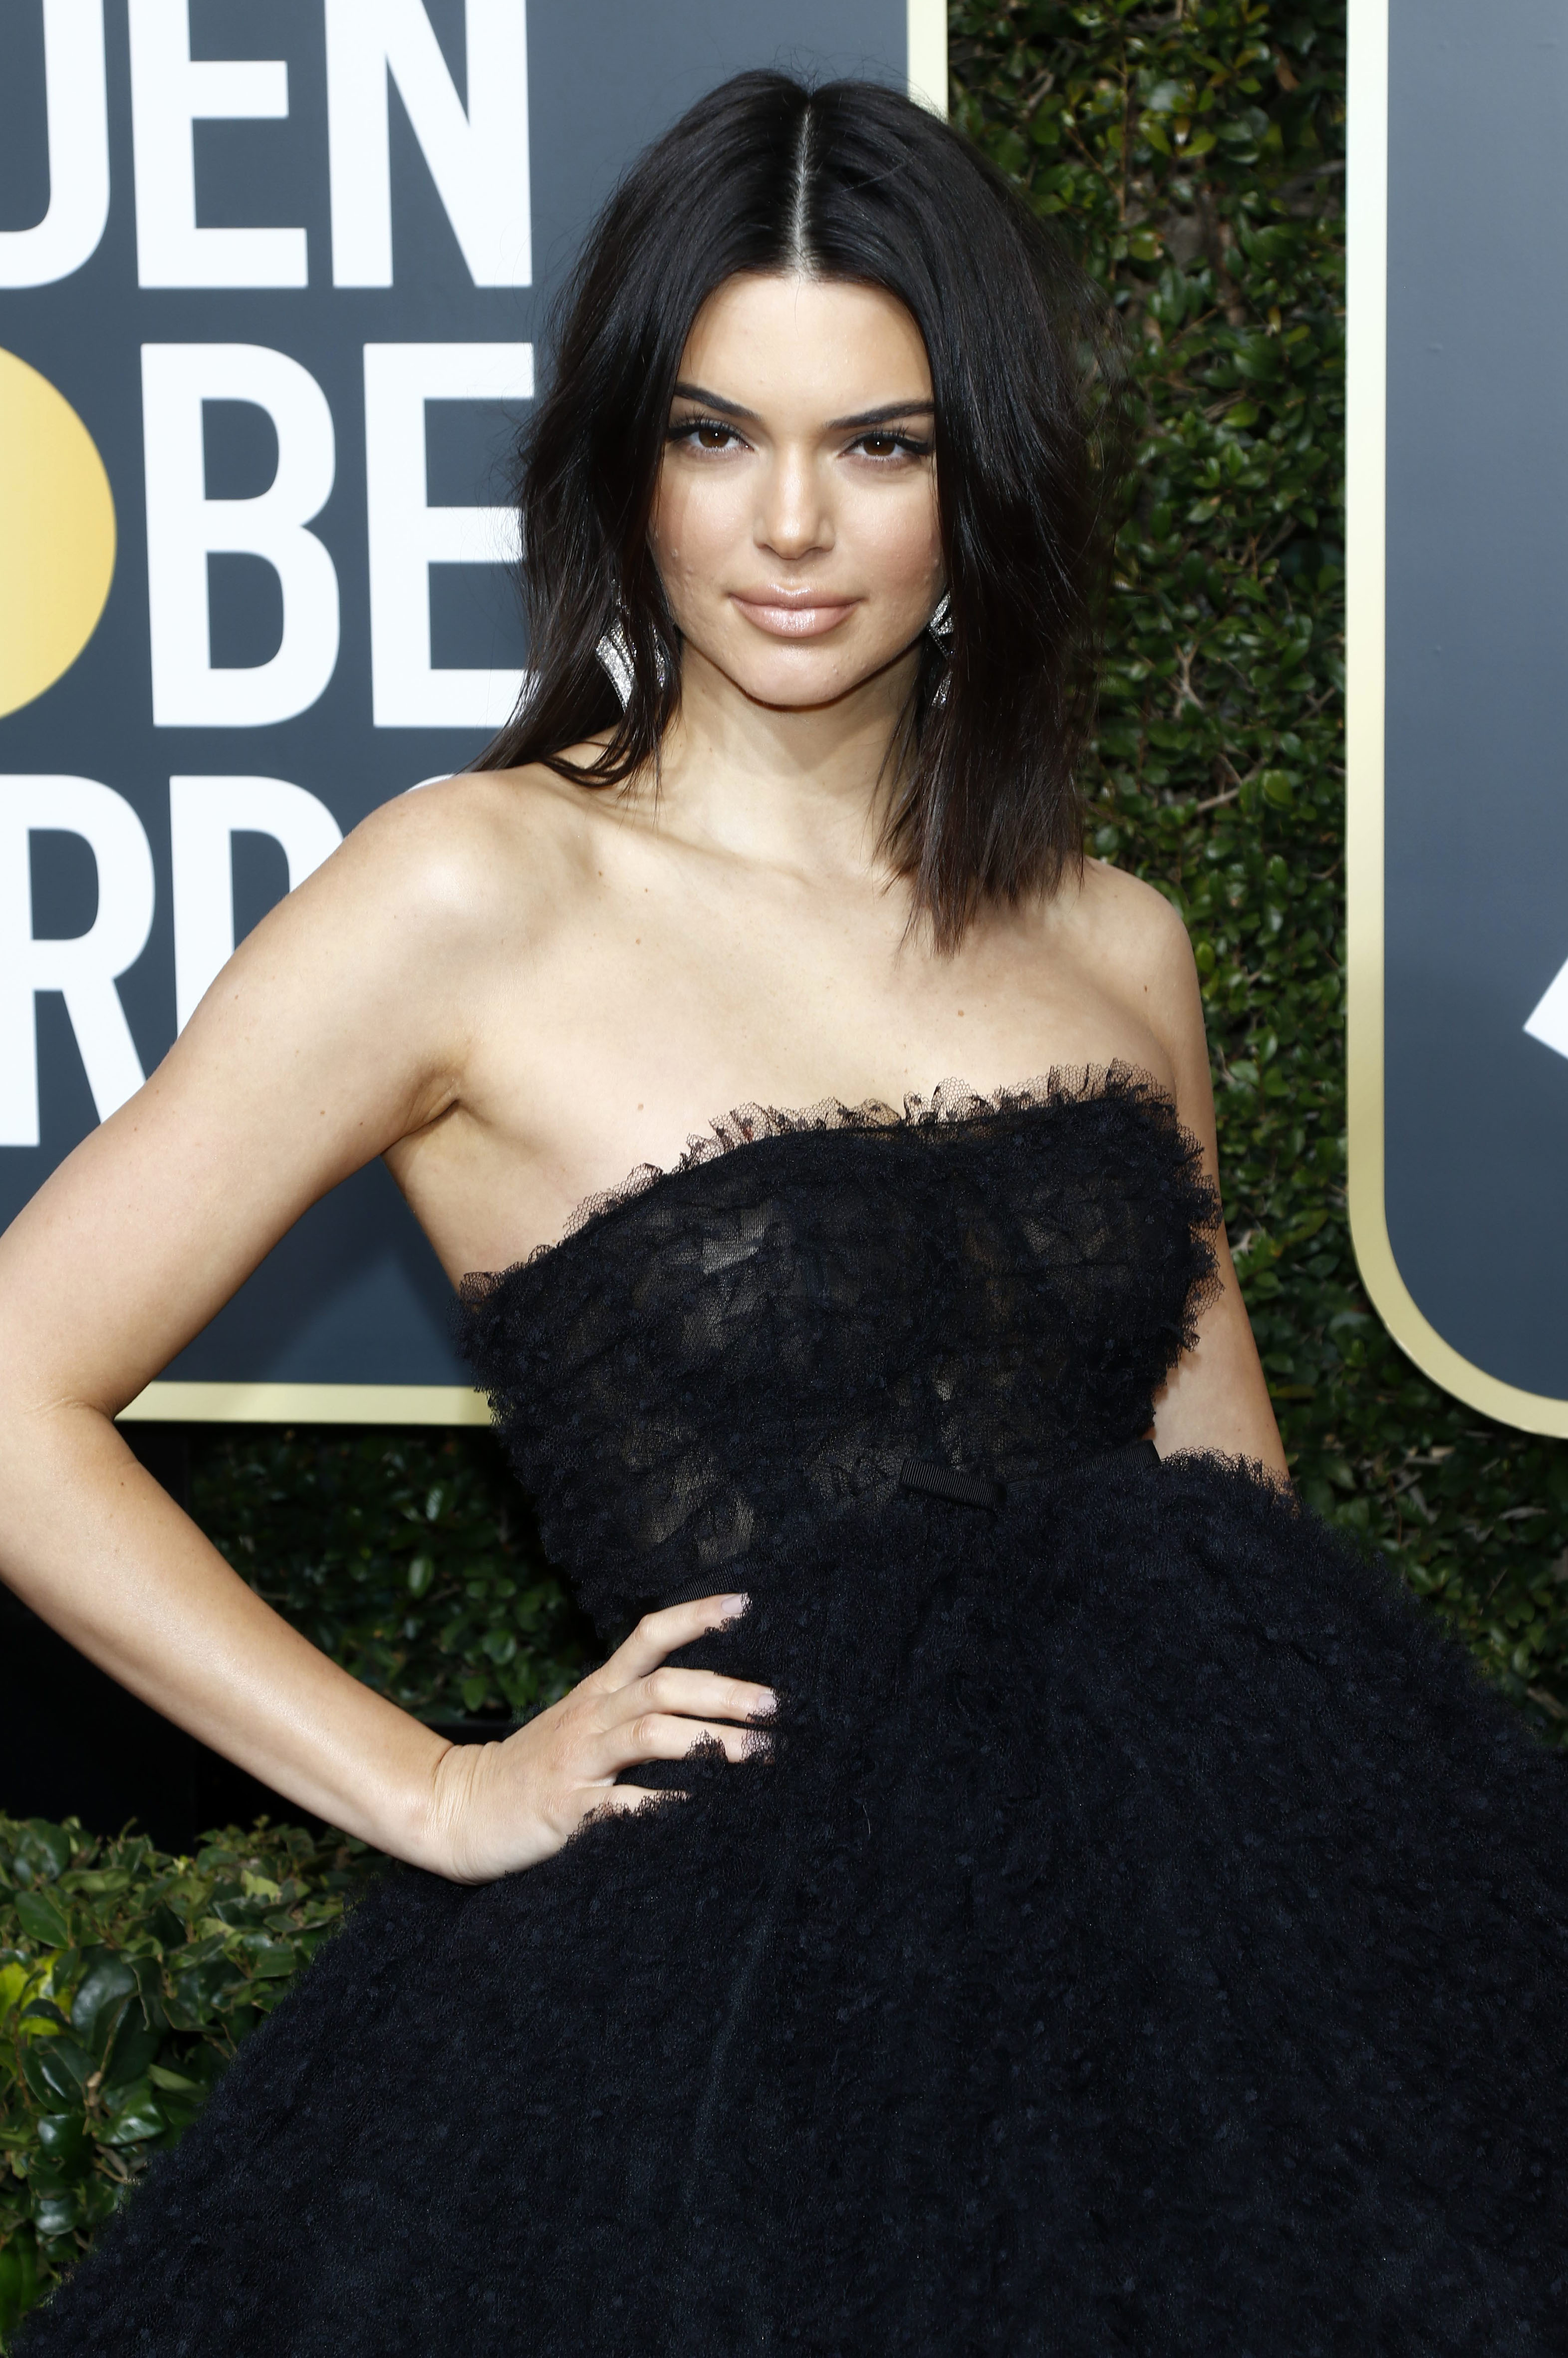 Kendall Jenner attends the 75th Golden Globe Awards in Los Angeles on Feb. 1, 2018.